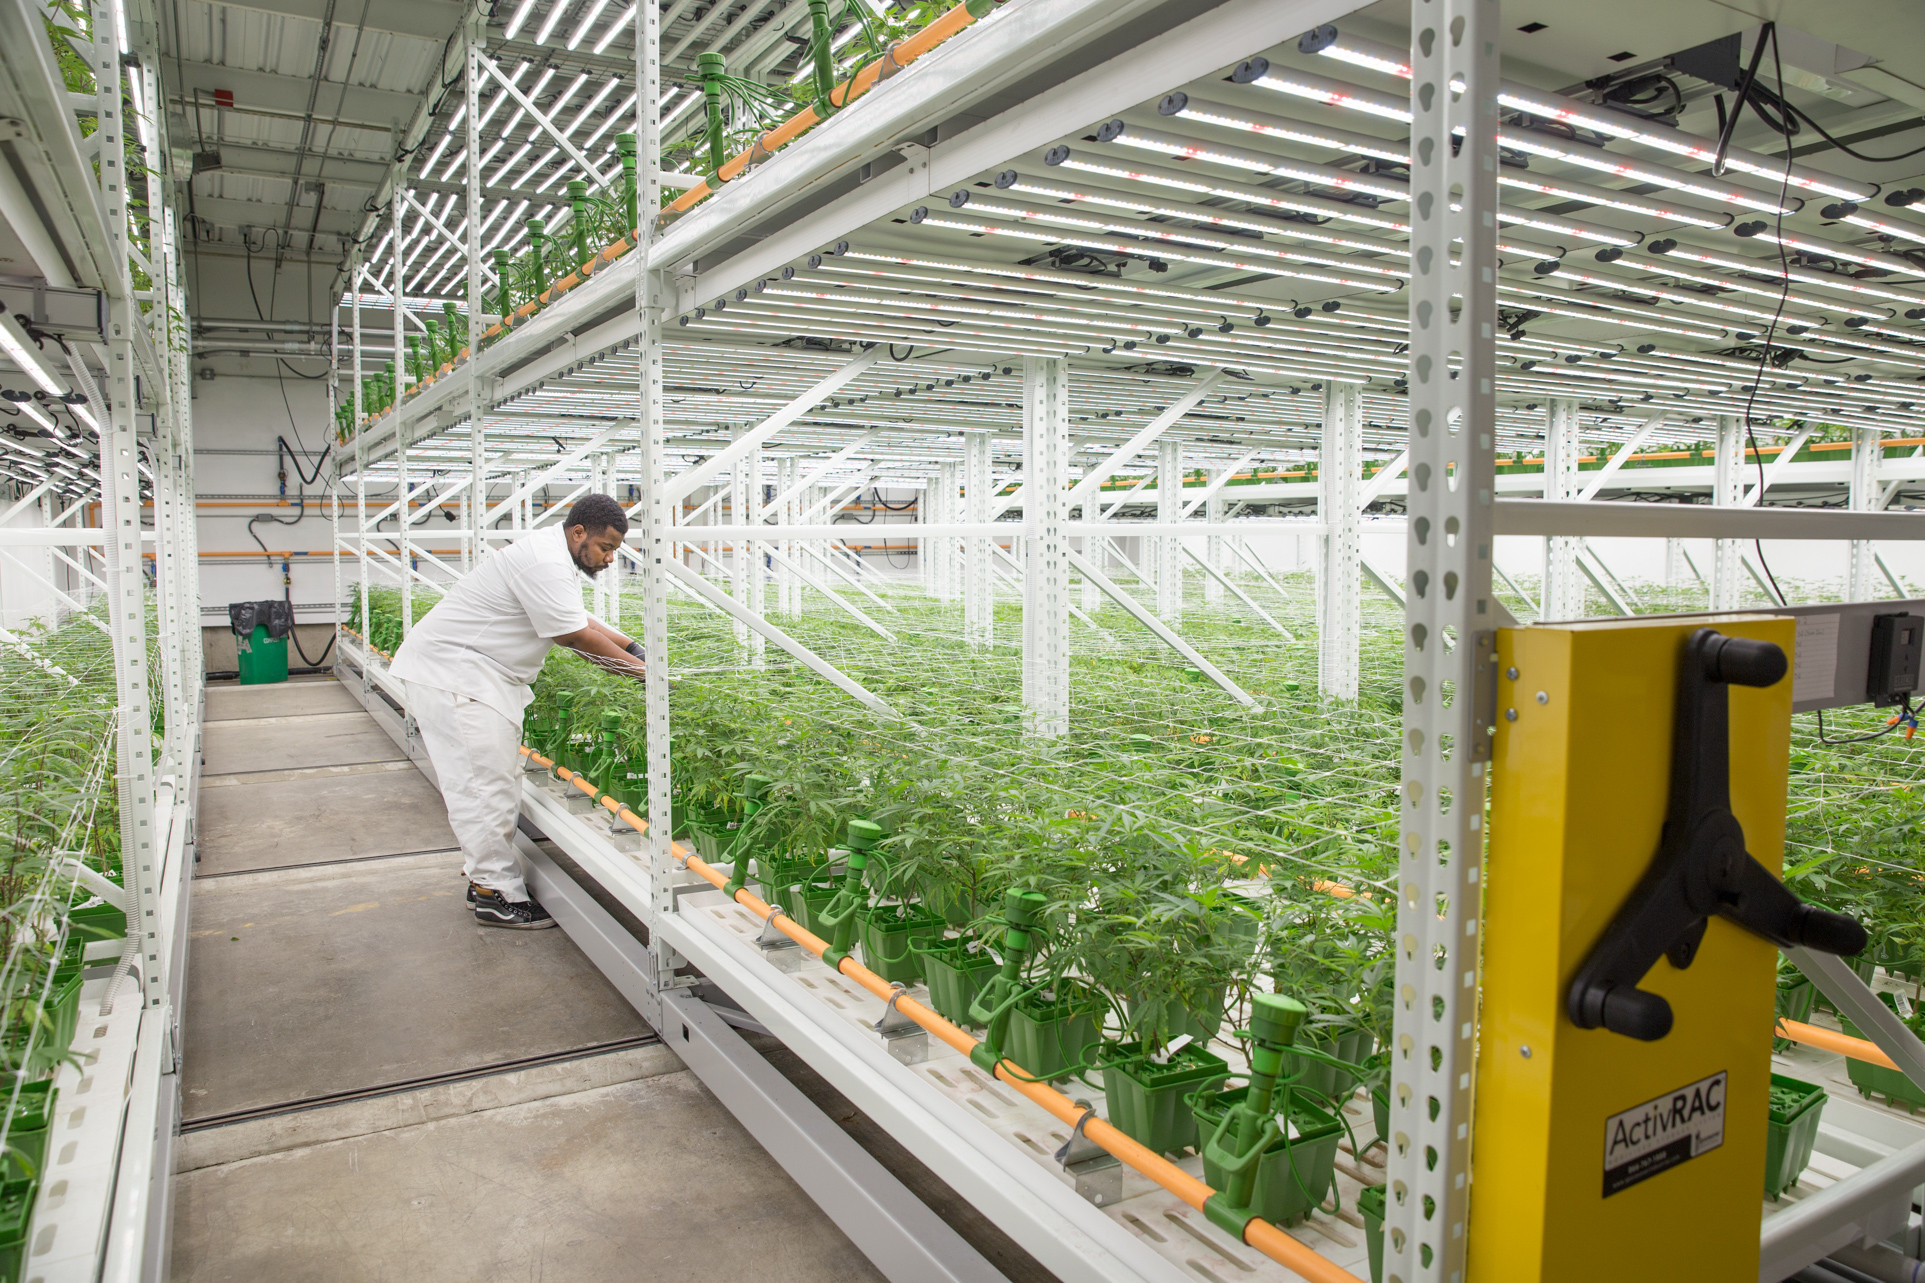 Cannabis Cultivation Grow Facility utilizing ActivRAC Mobile System